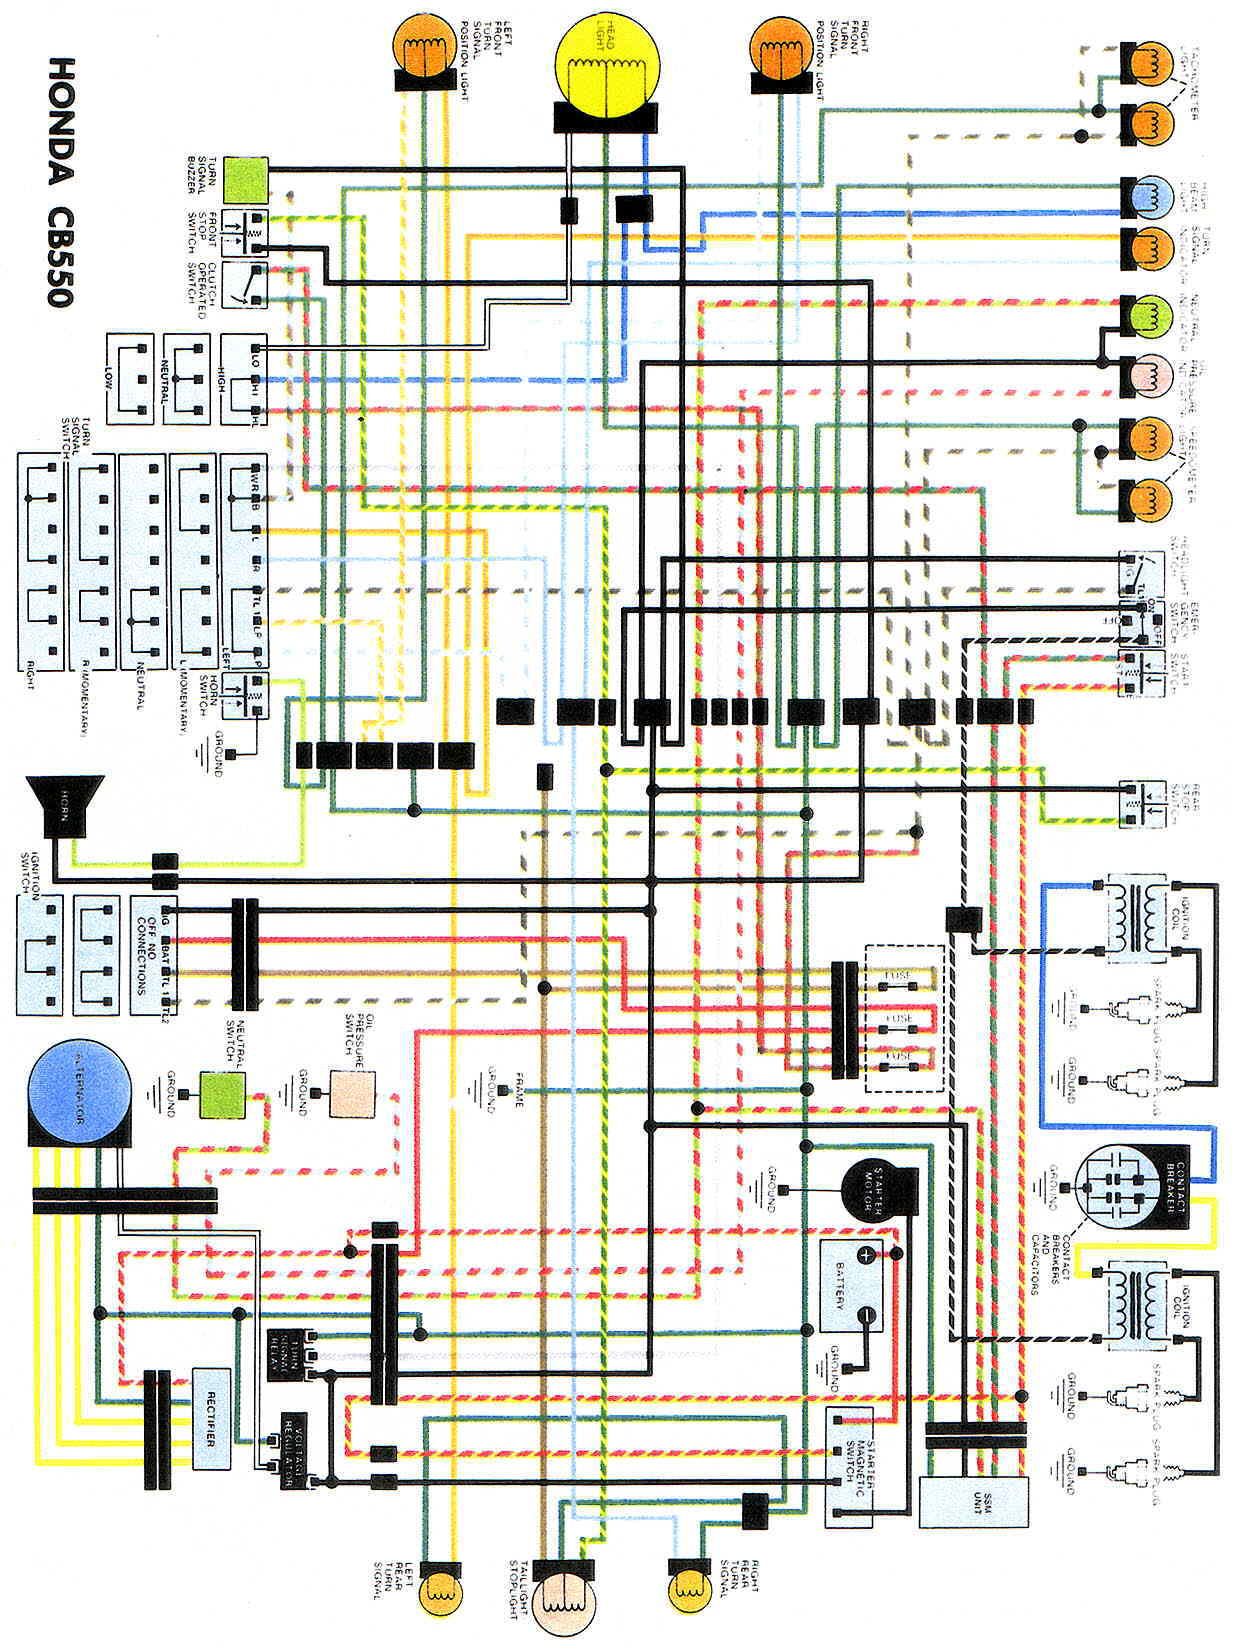 CB550WiringDiag cb400 rectifier faq honda cm400 wiring diagram at webbmarketing.co